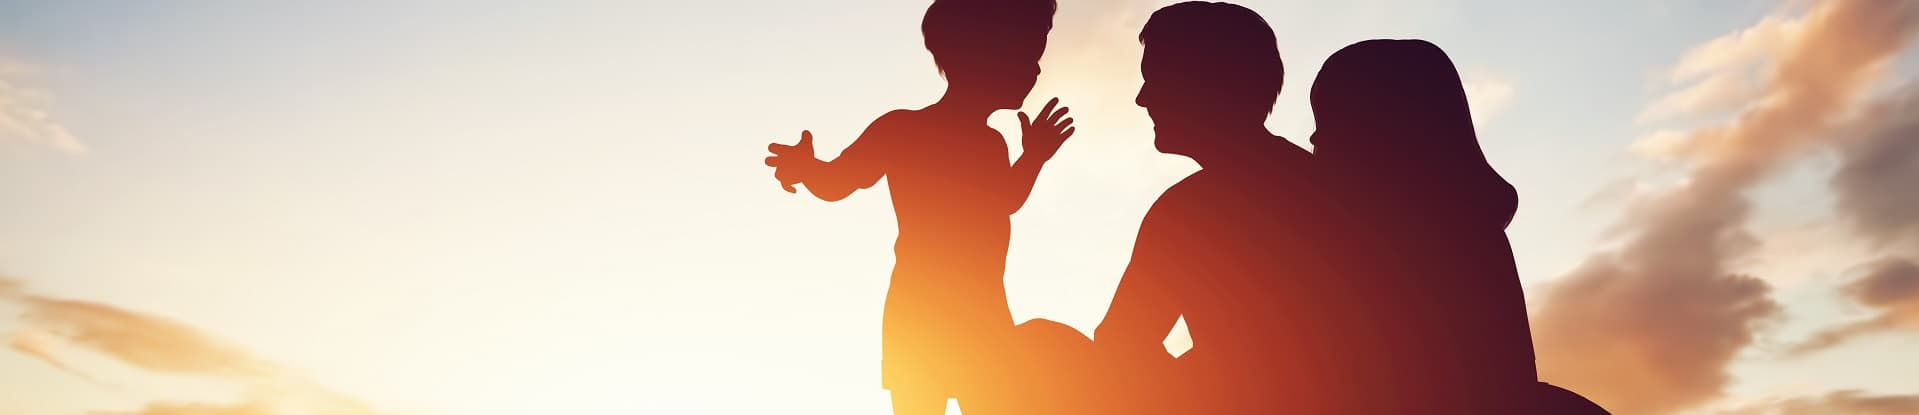 Family trusts: will they survive?